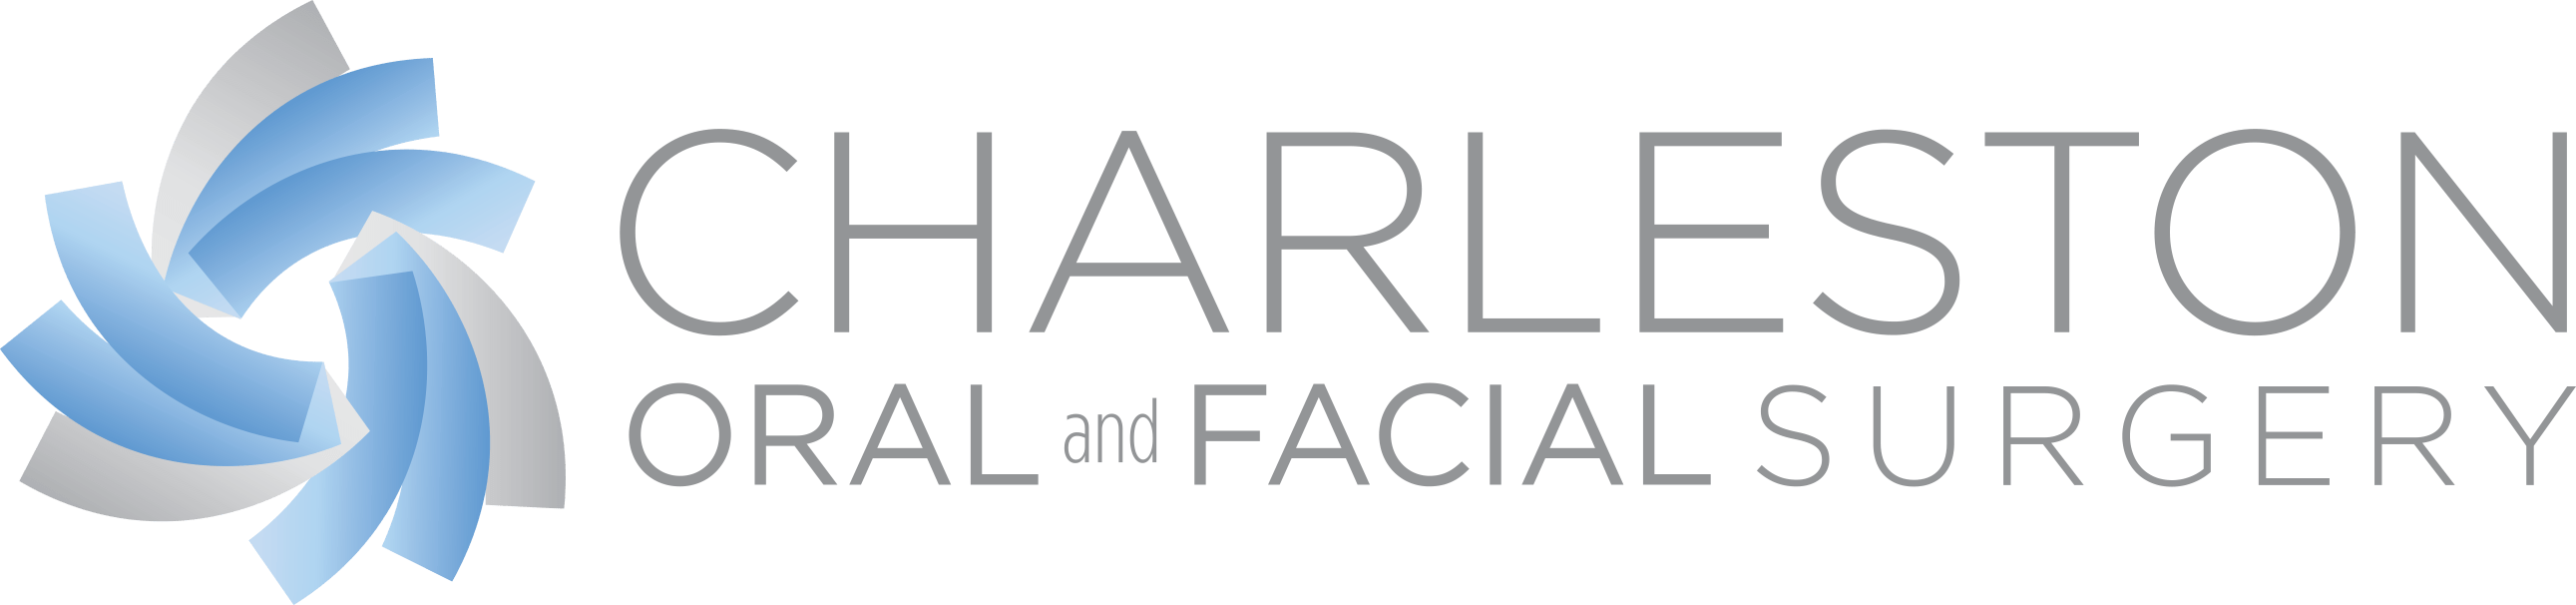 Charleston Oral and Facial Surgery